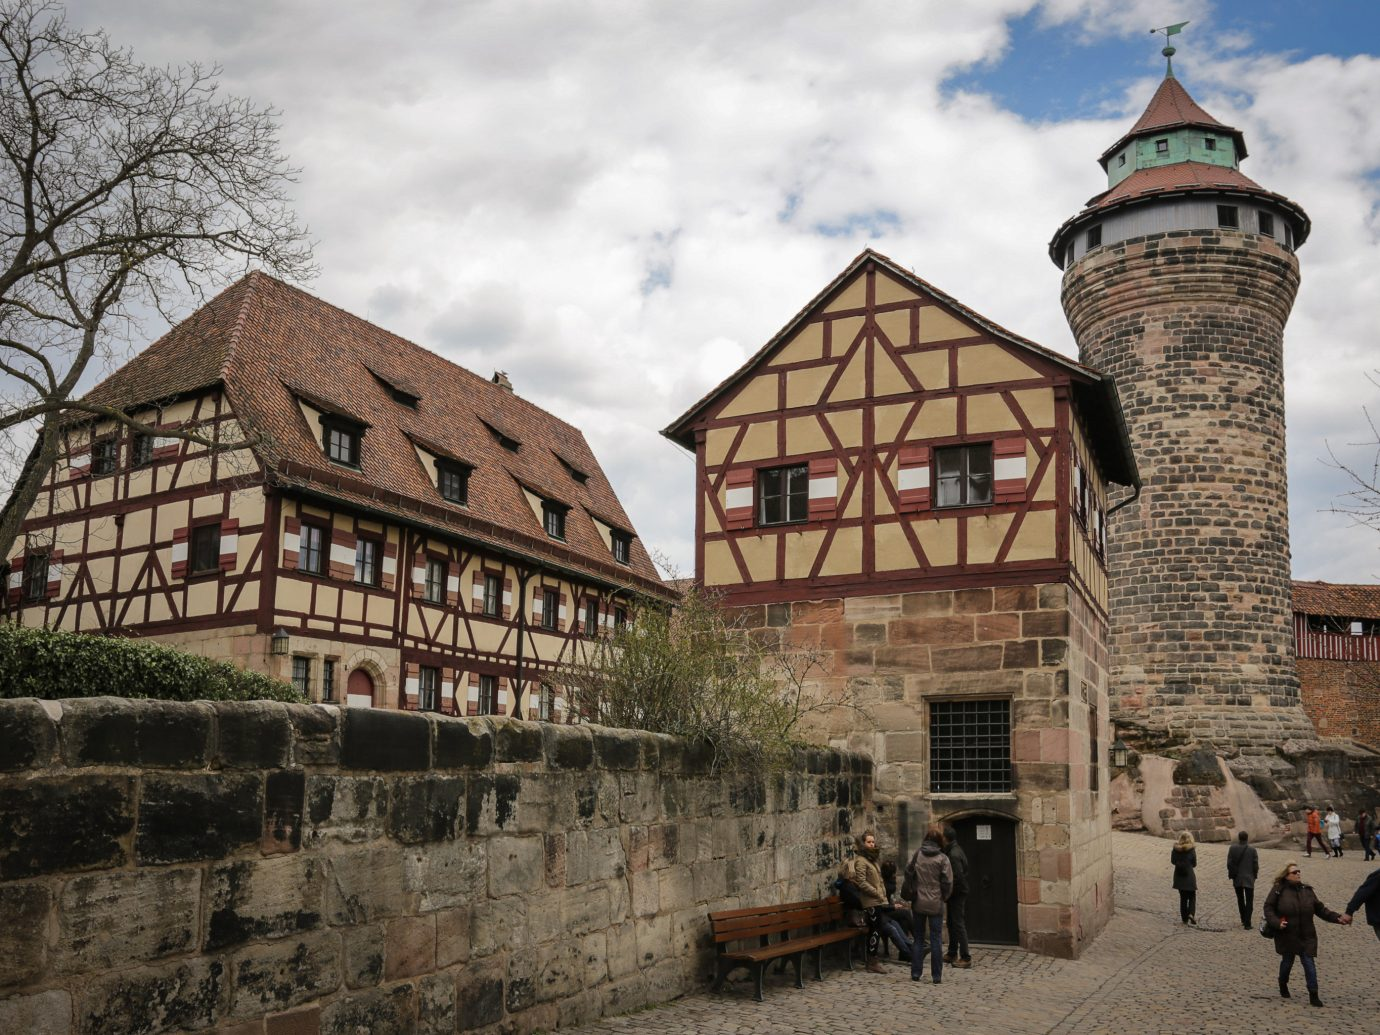 Berlin europe Germany Hamburg Munich Trip Ideas building Town medieval architecture château castle wall sky history fortification historic site tourist attraction tree middle ages facade roof estate City